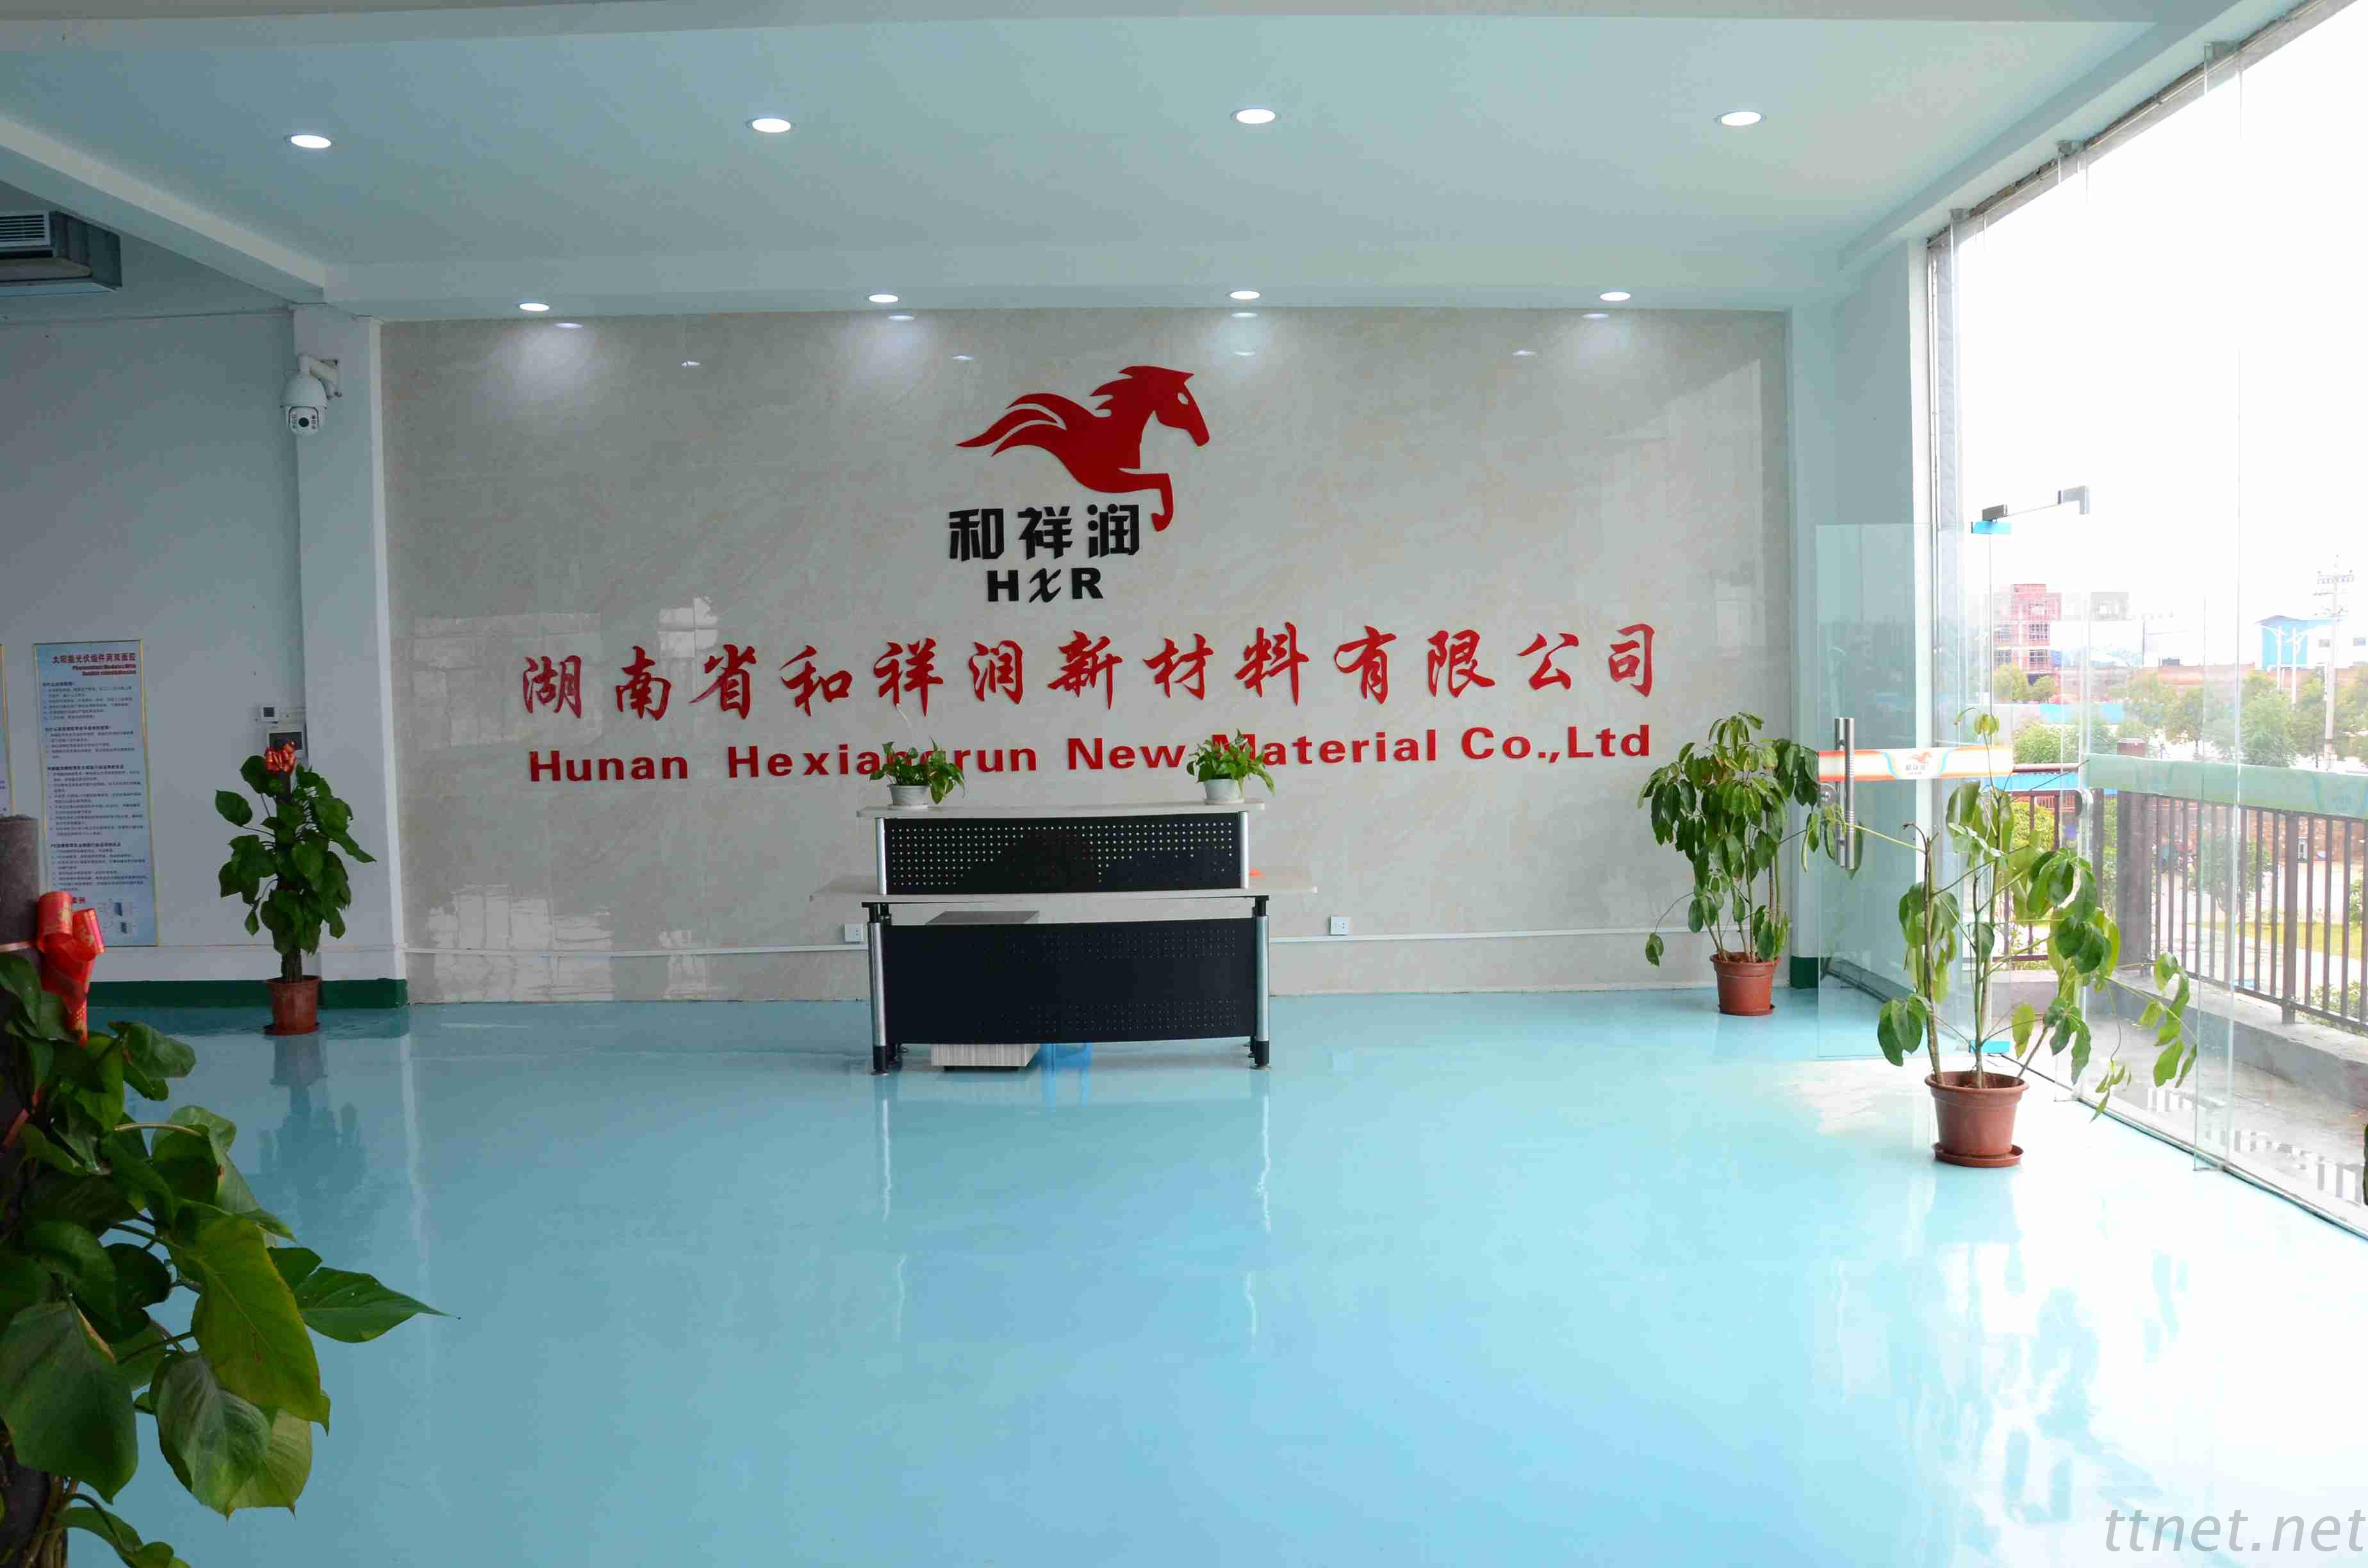 Hunan Province New Material Co., Ltd